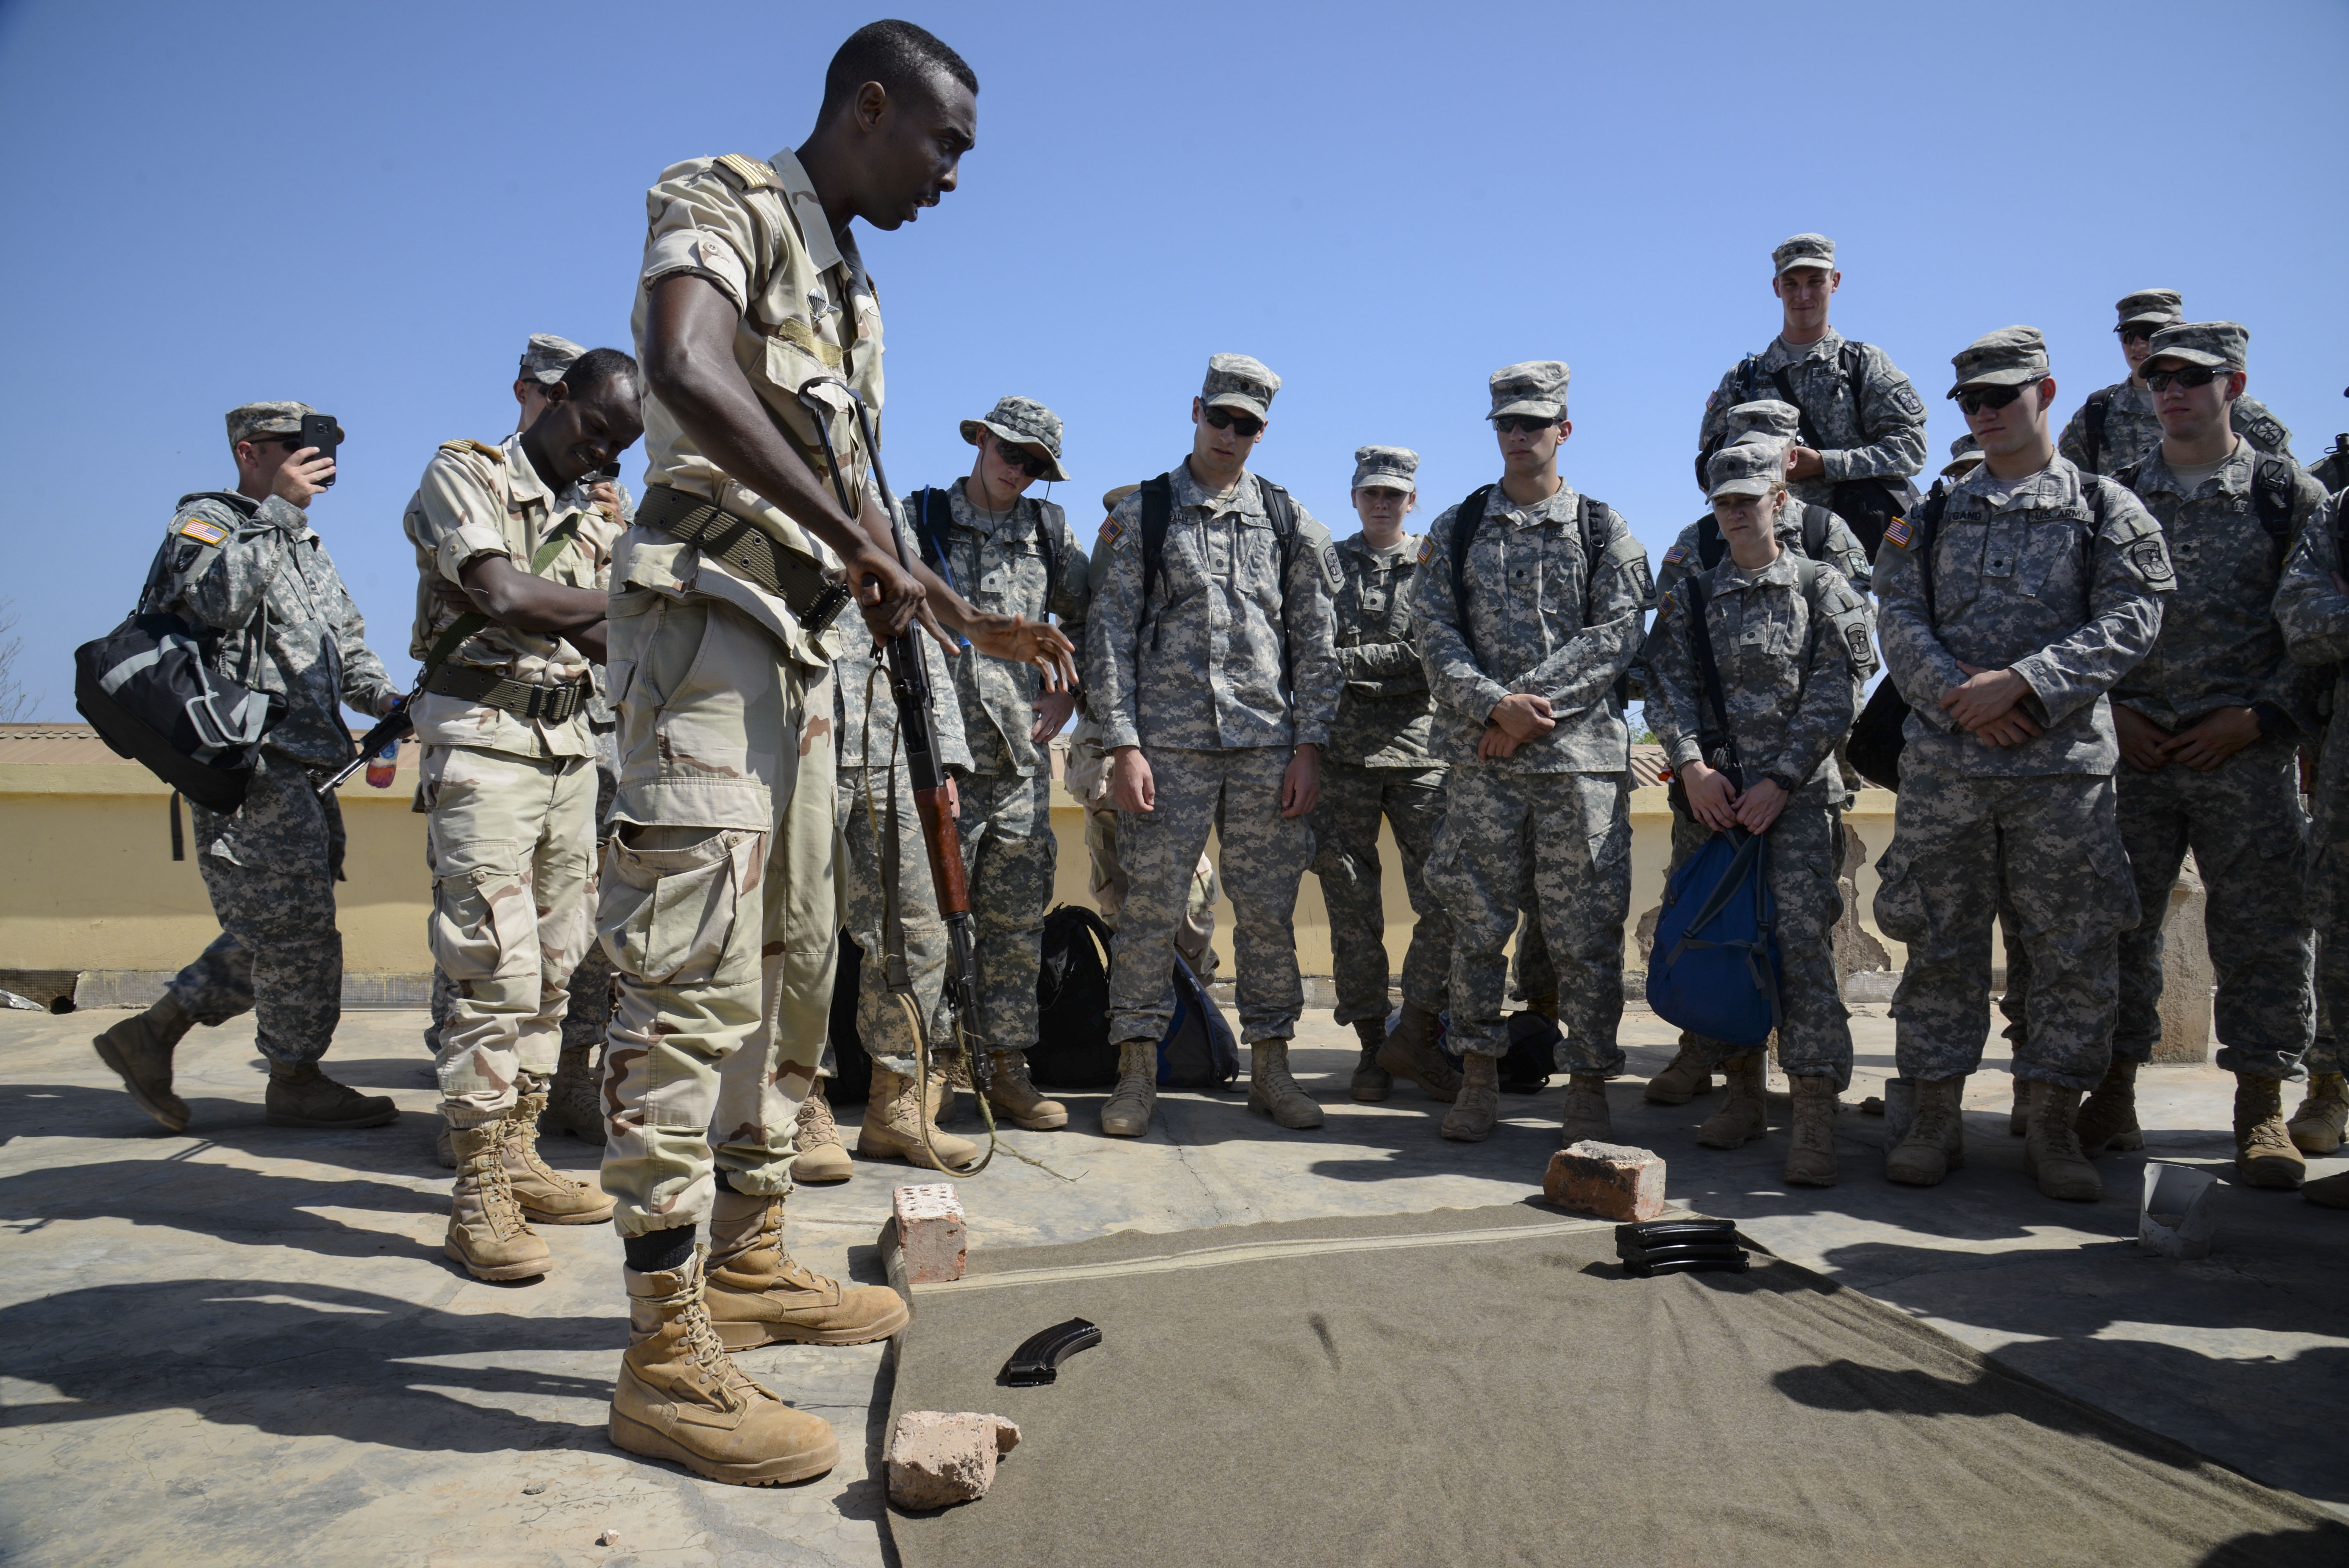 U.S. Army Reserve Officer Training Corps cadets watch as a Djiboutian Army weapons instructor teaches them how to safely field strip an AK-47 at the Djiboutian Army Academy in Arta, Djibouti, July 25, 2016. After the cadets learned the fundamentals, they competed with each other to see who could field strip the weapon quickest. (U.S. Air Force photo by Staff Sgt. Benjamin Raughton/Released)